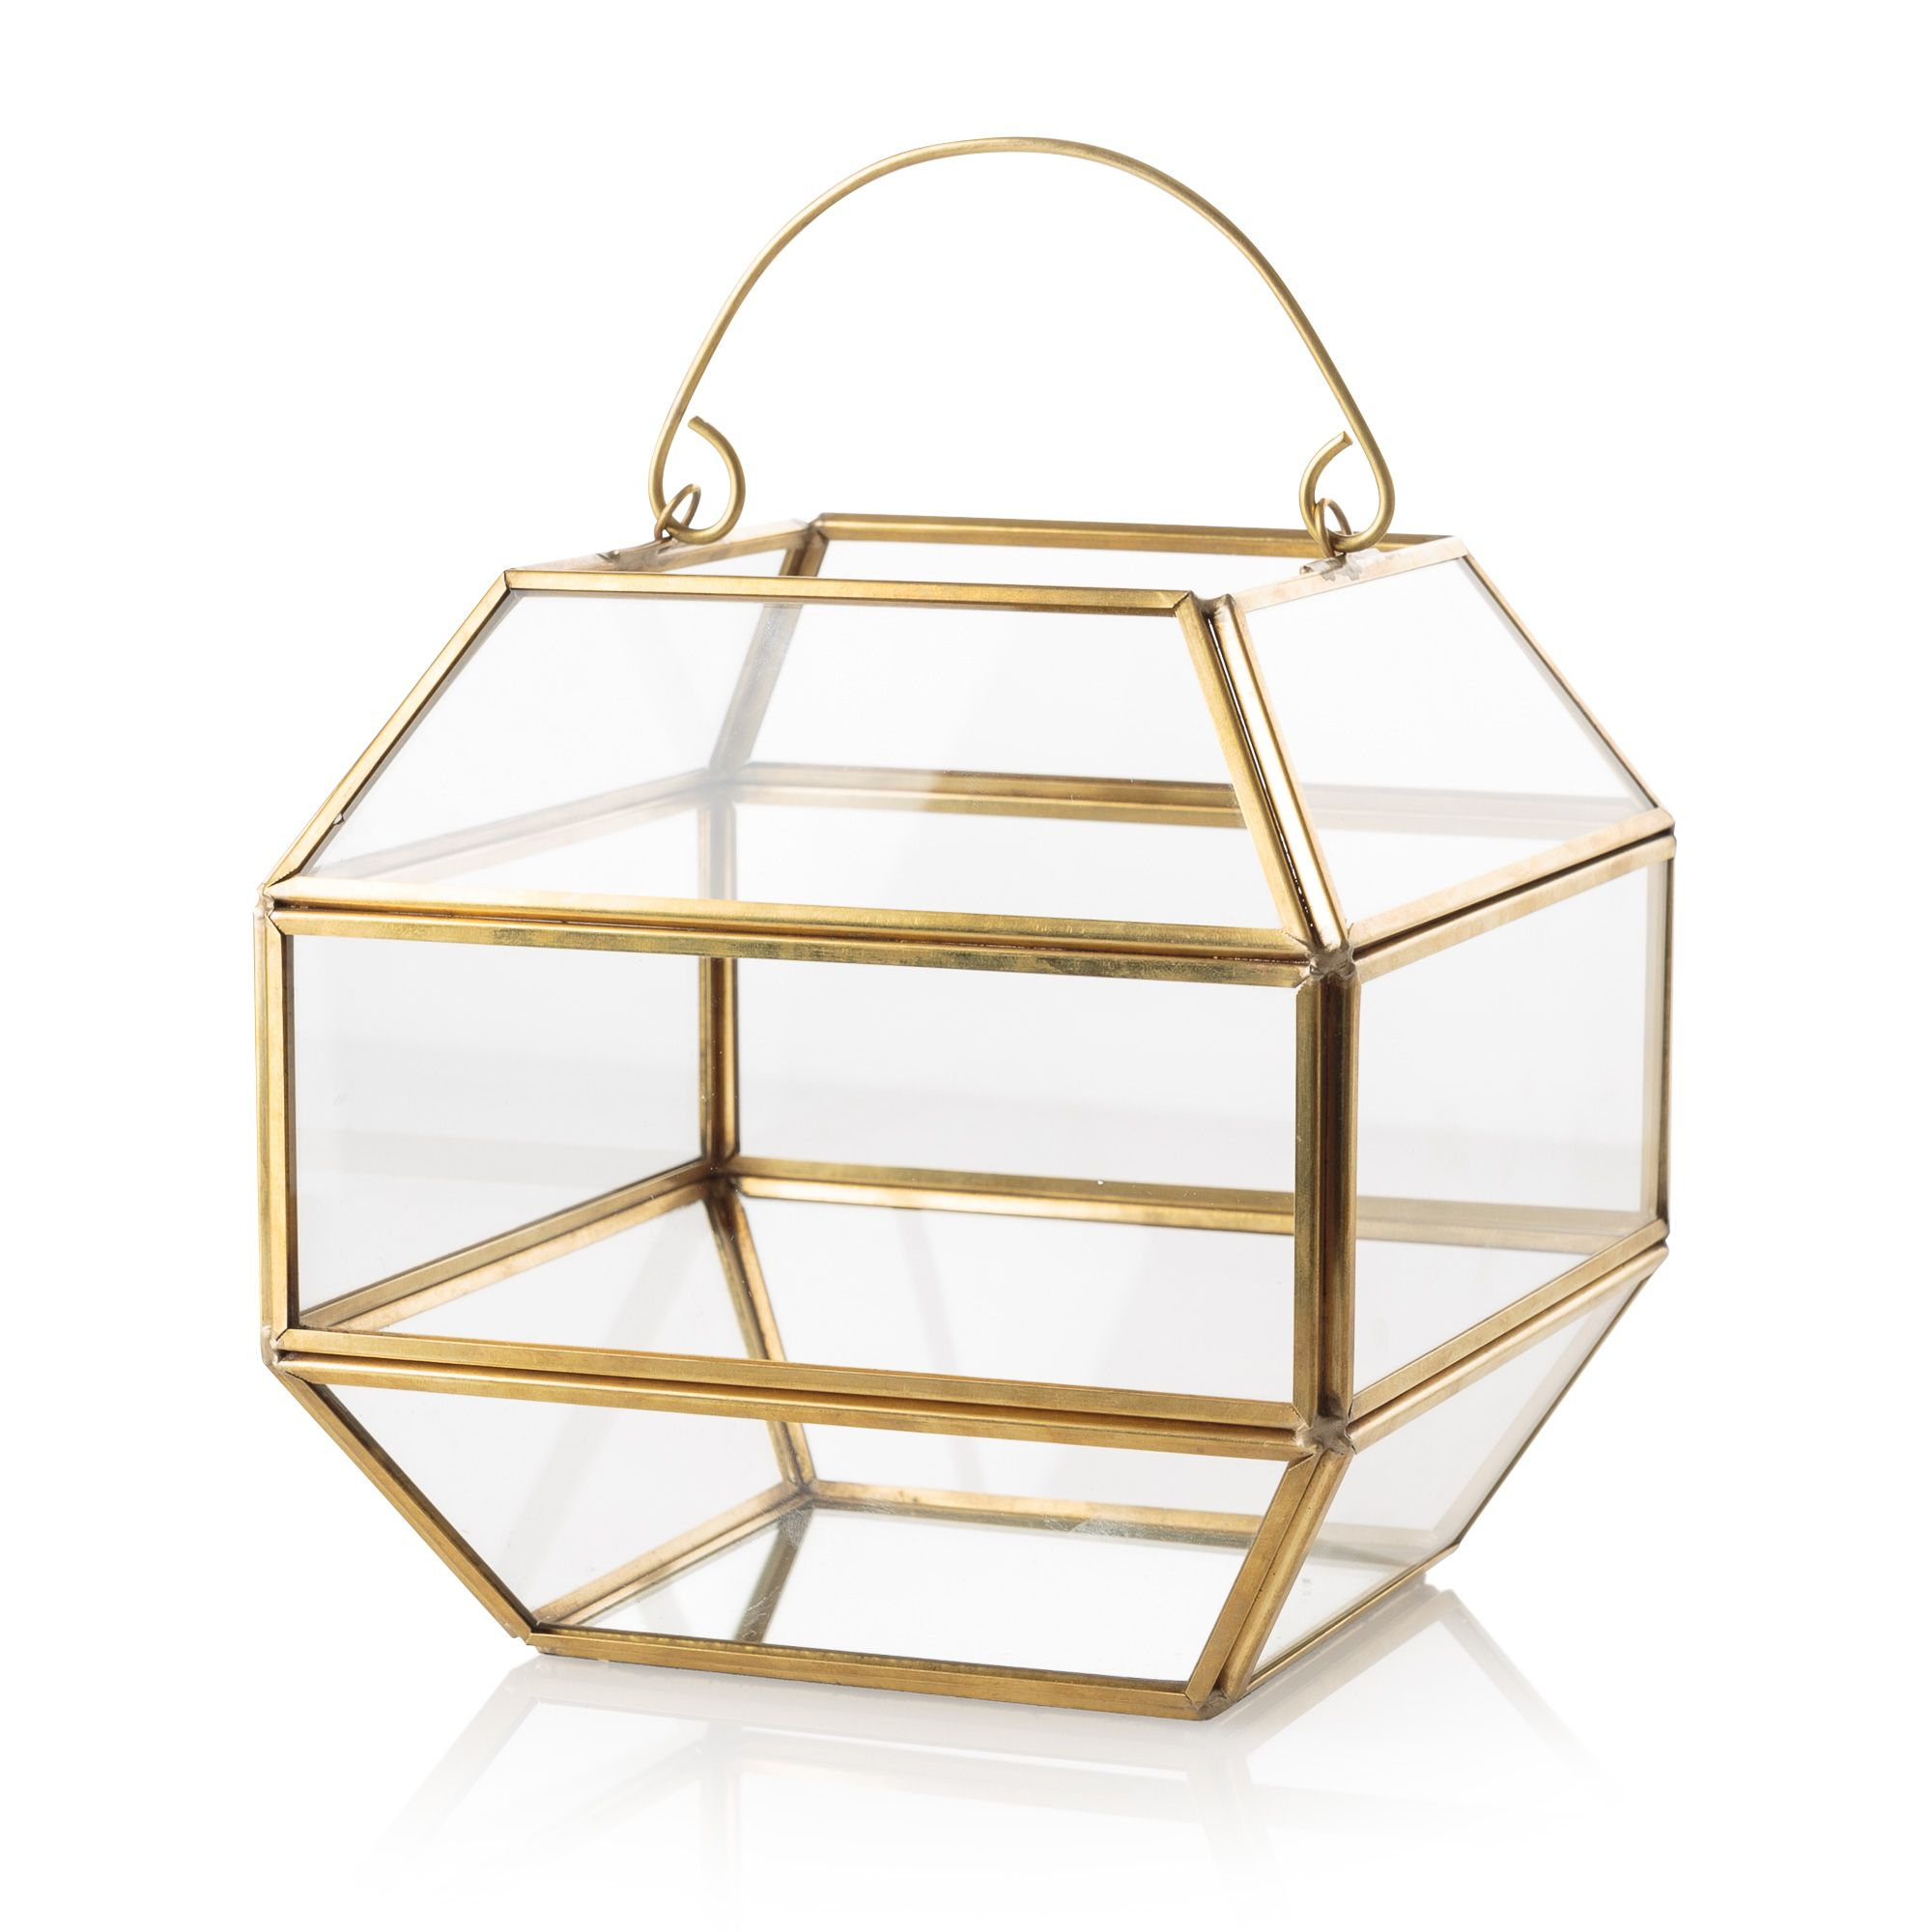 Buy gold u glass gem terrarium from oliver bonas come home with me